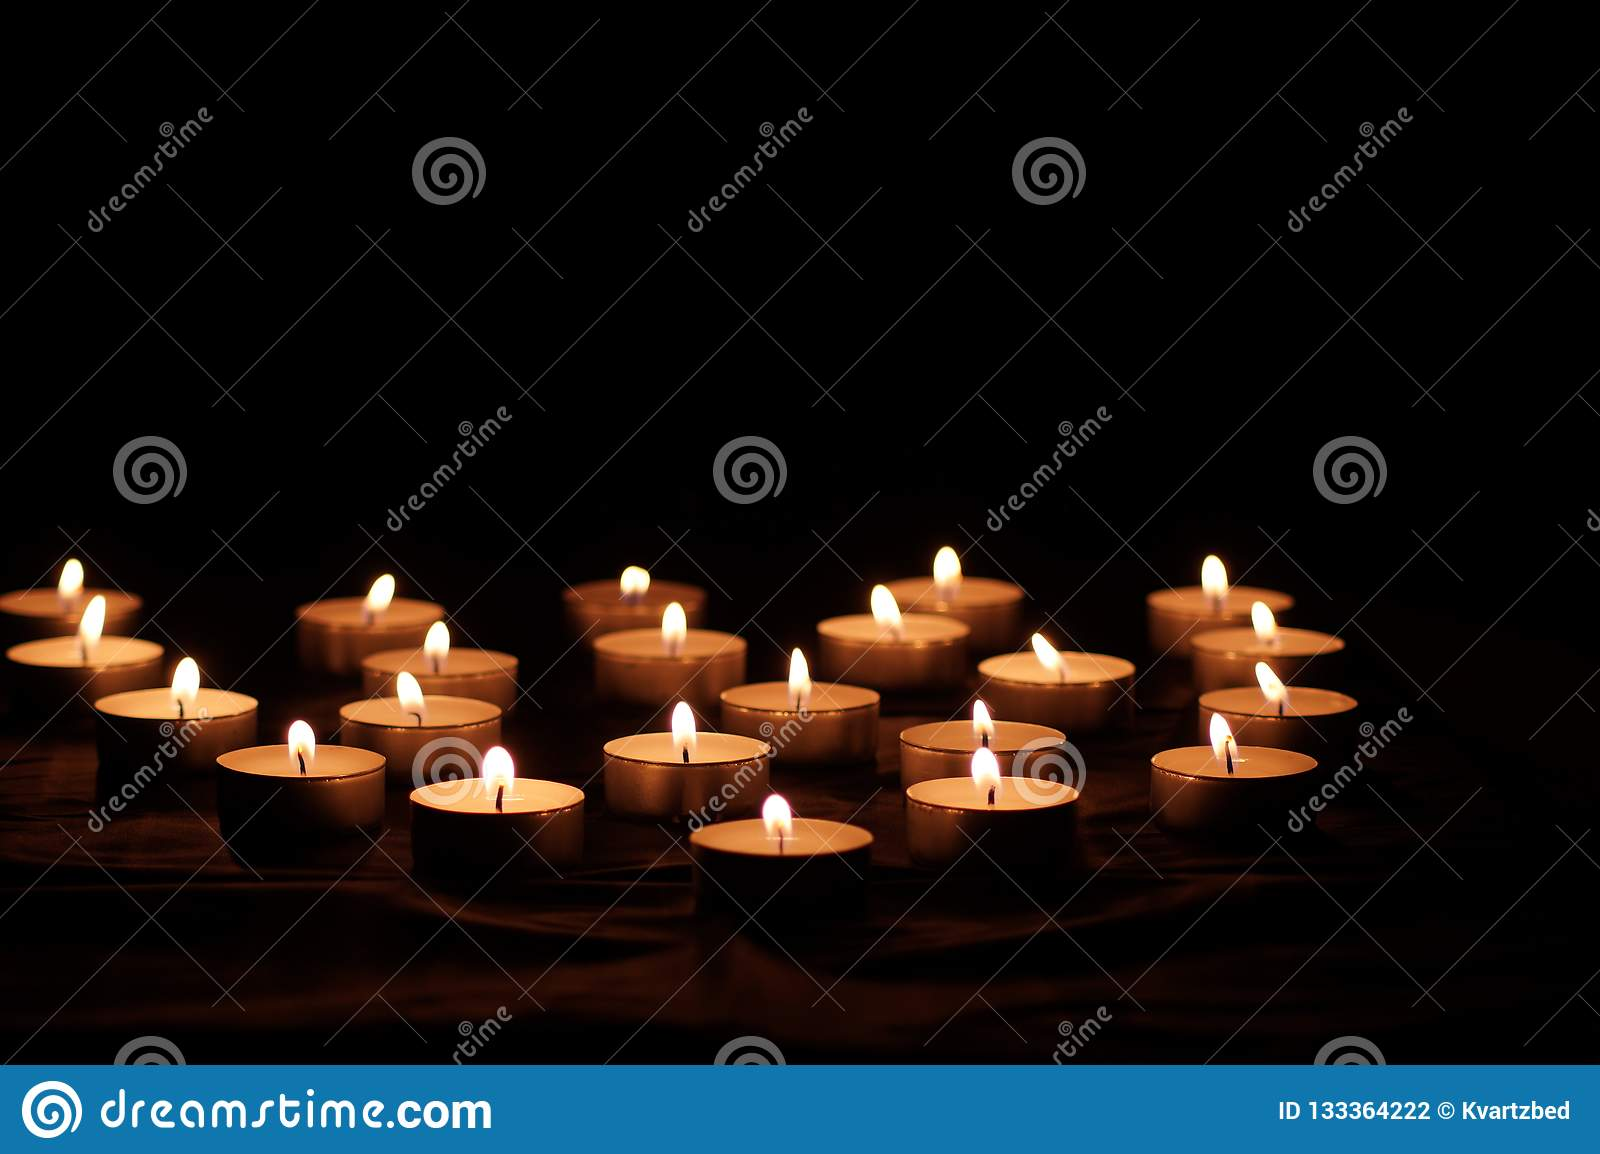 Burning candles with bright flames